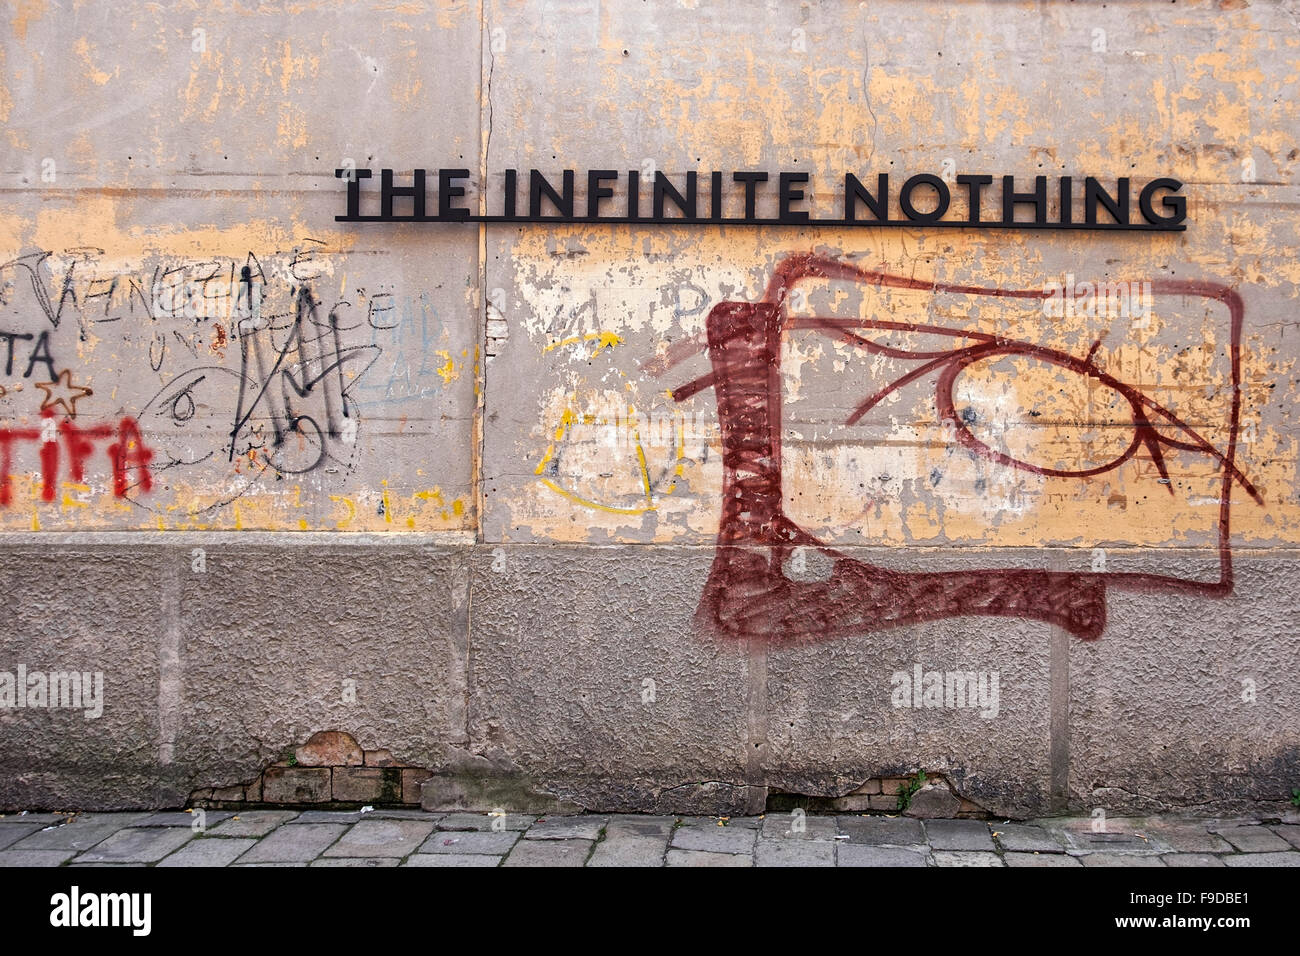 The Infinite Nothing, sign and graffiti on wall during the 2015 56th Venice Biennale.La Biennale di Venezia,Venice,Italy - Stock Image